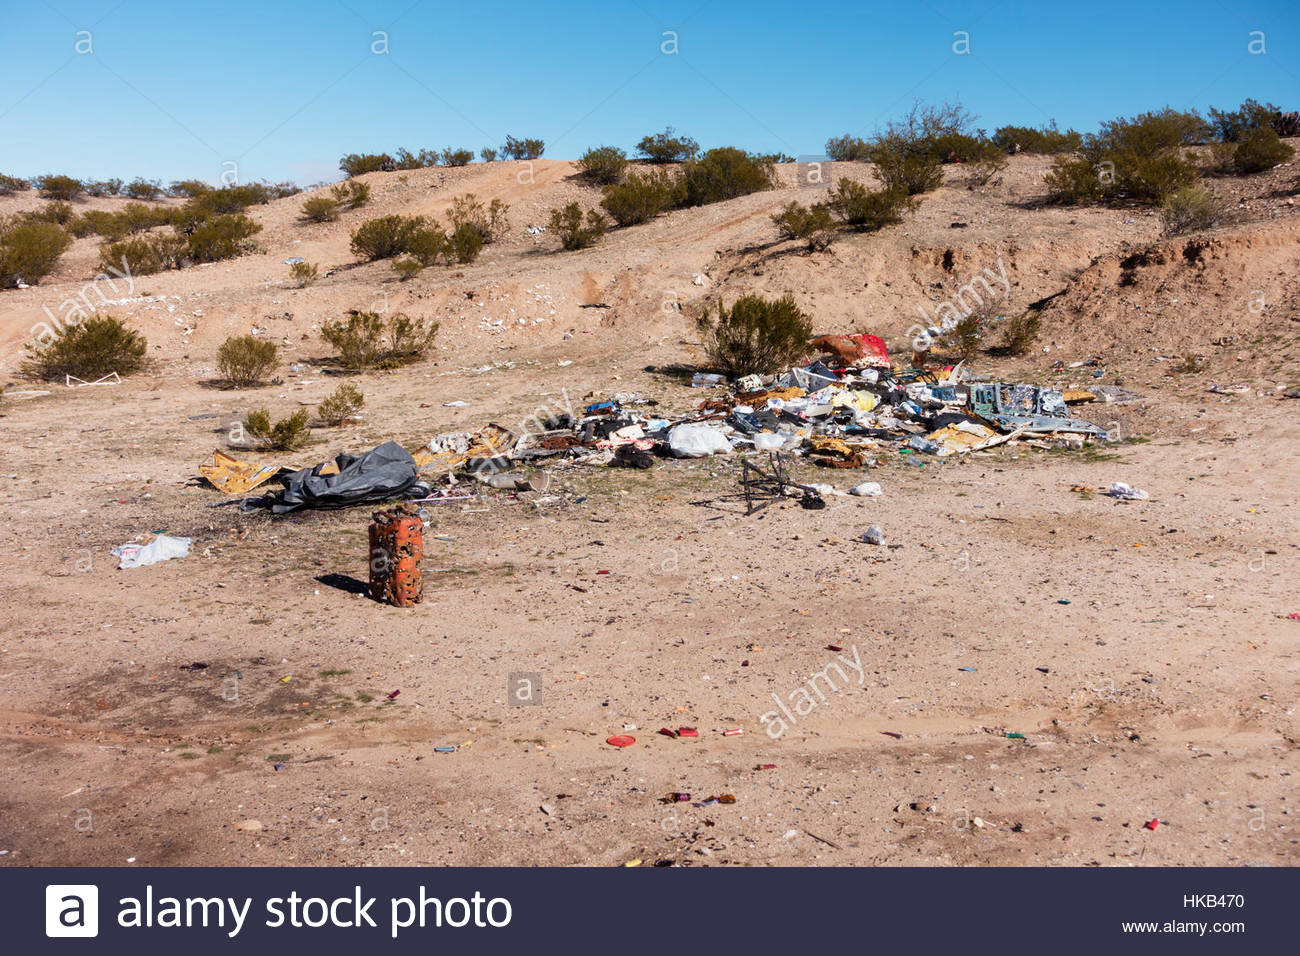 Trash illegal dumping in desert Arizona - Stock Image